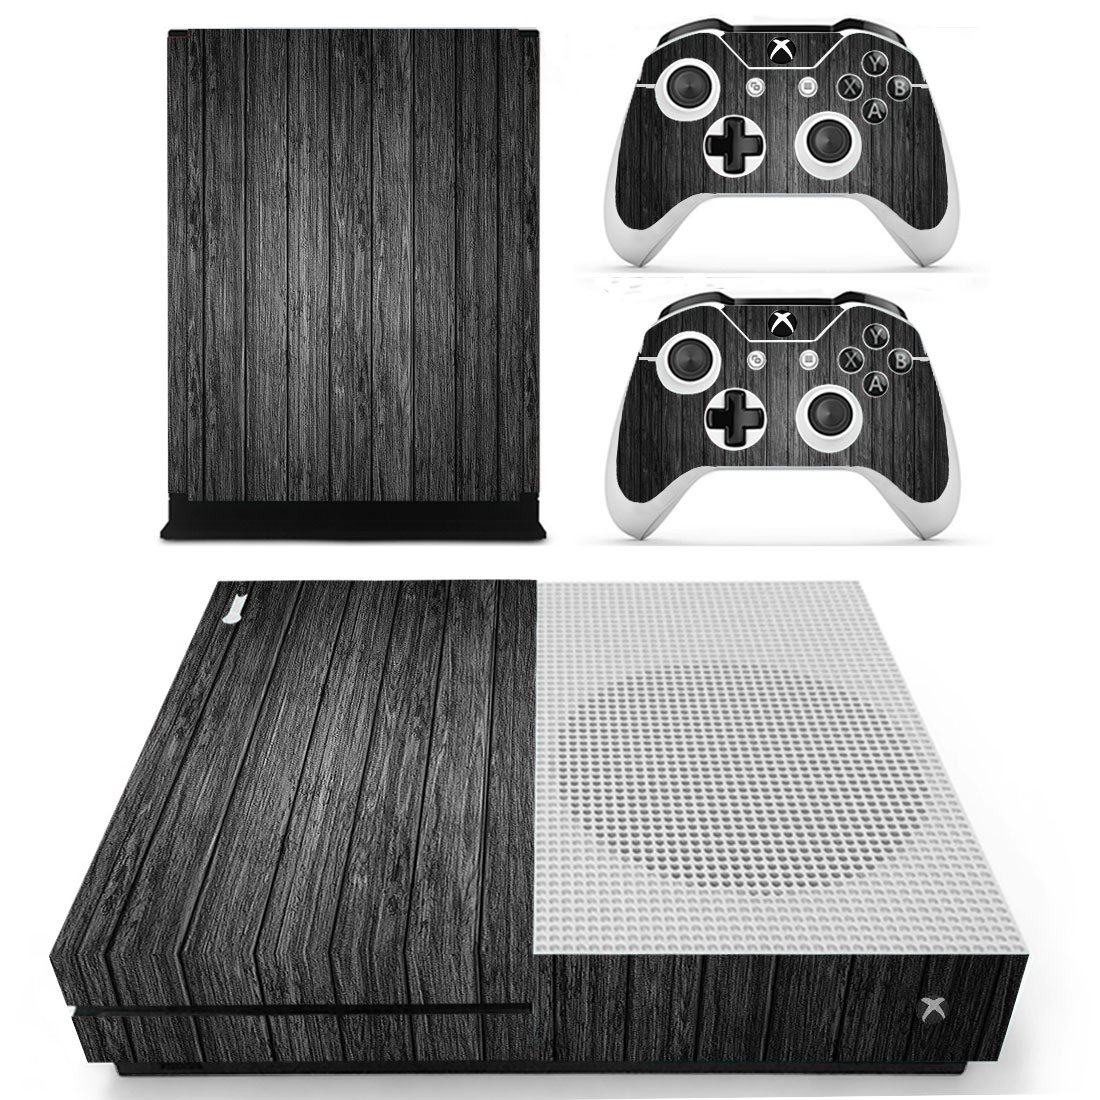 Amazon.com: Xbox One S Slim Skin Sticker Vinly Decal Cover for Xbox One  Slim Black Wood by SKINOWN: Computers & Accessories